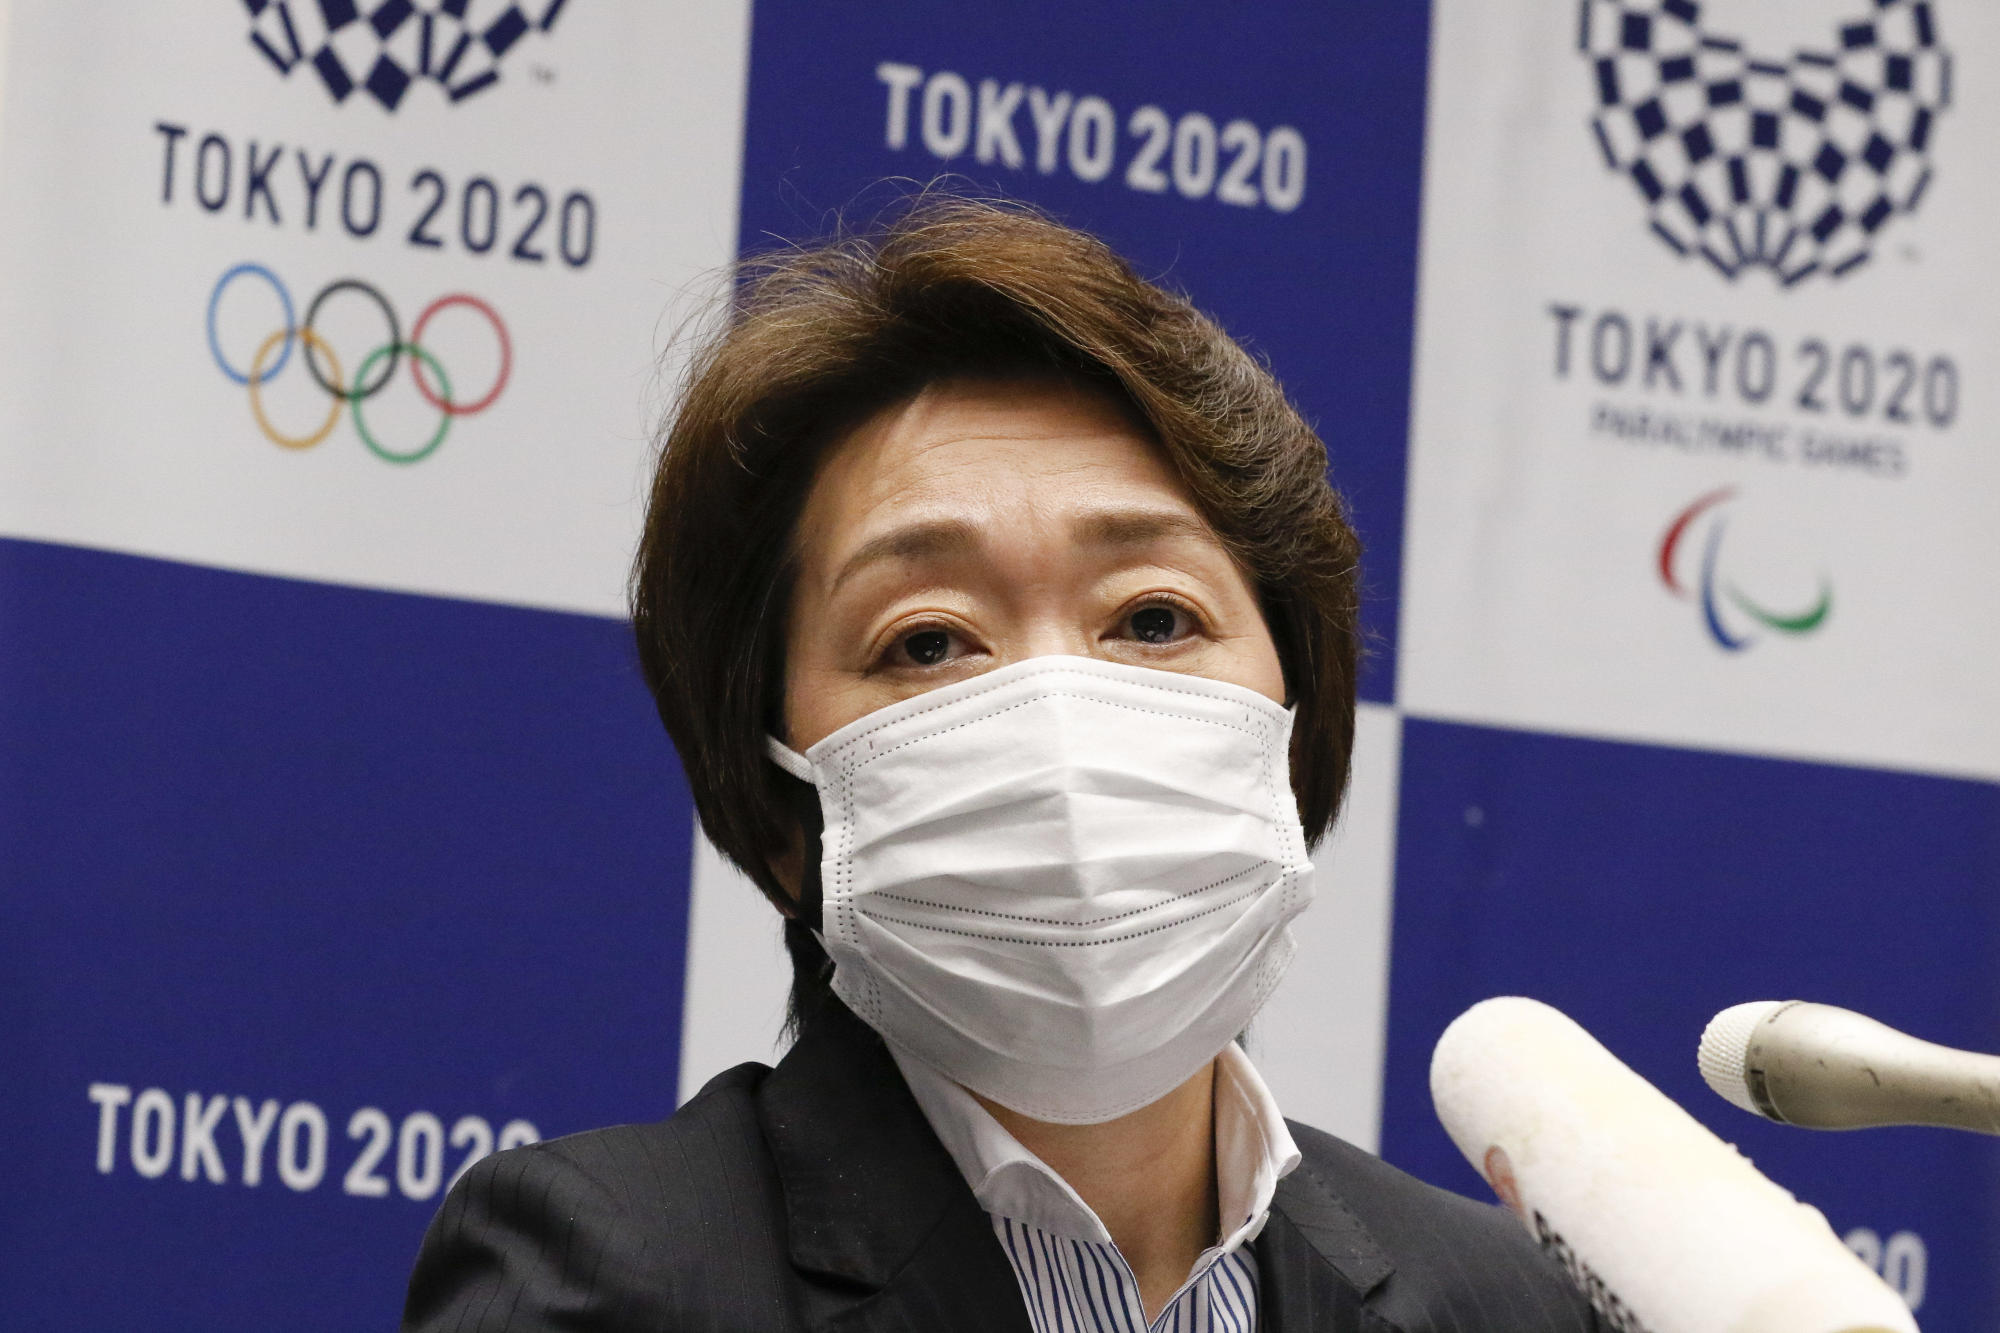 Tokyo Olympics chief denies decision made to ban foreign fans